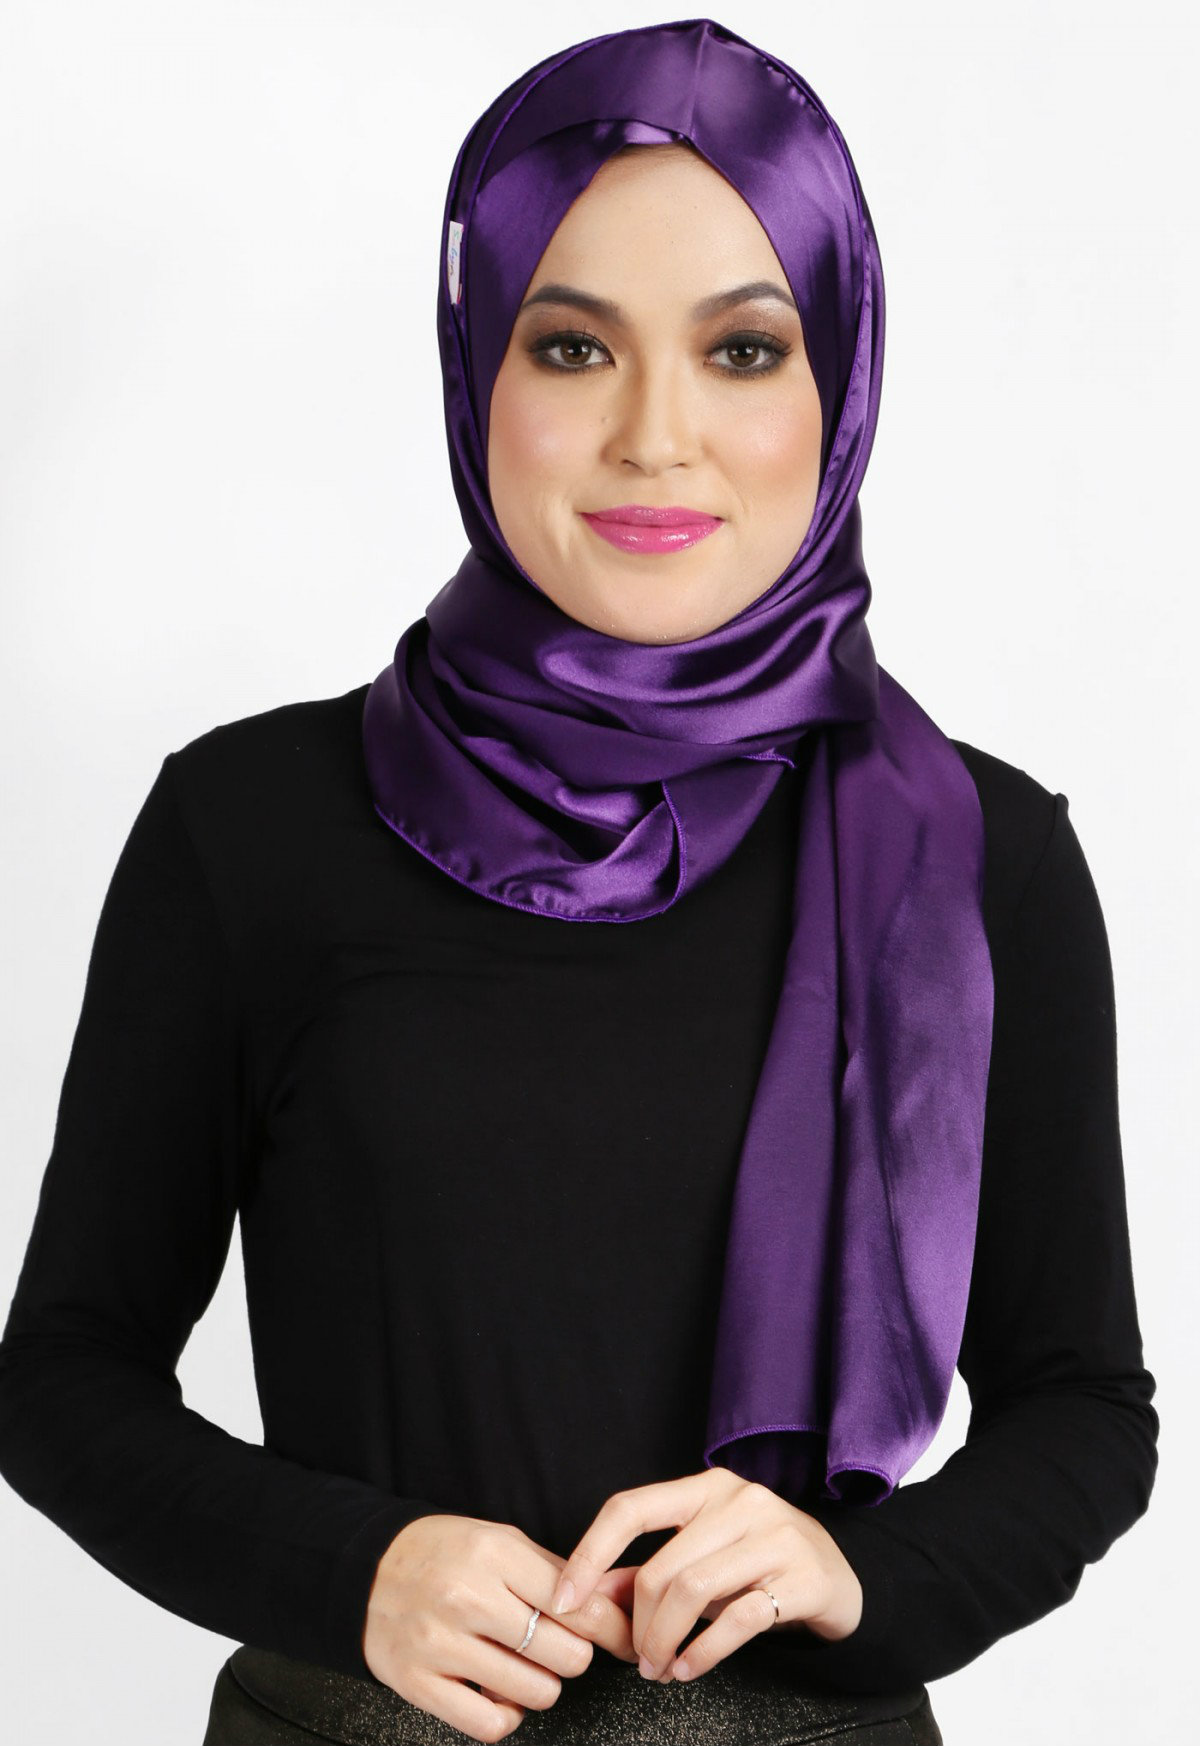 Discussion on this topic: 5 New Ways To Wear A Scarf, 5-new-ways-to-wear-a-scarf/